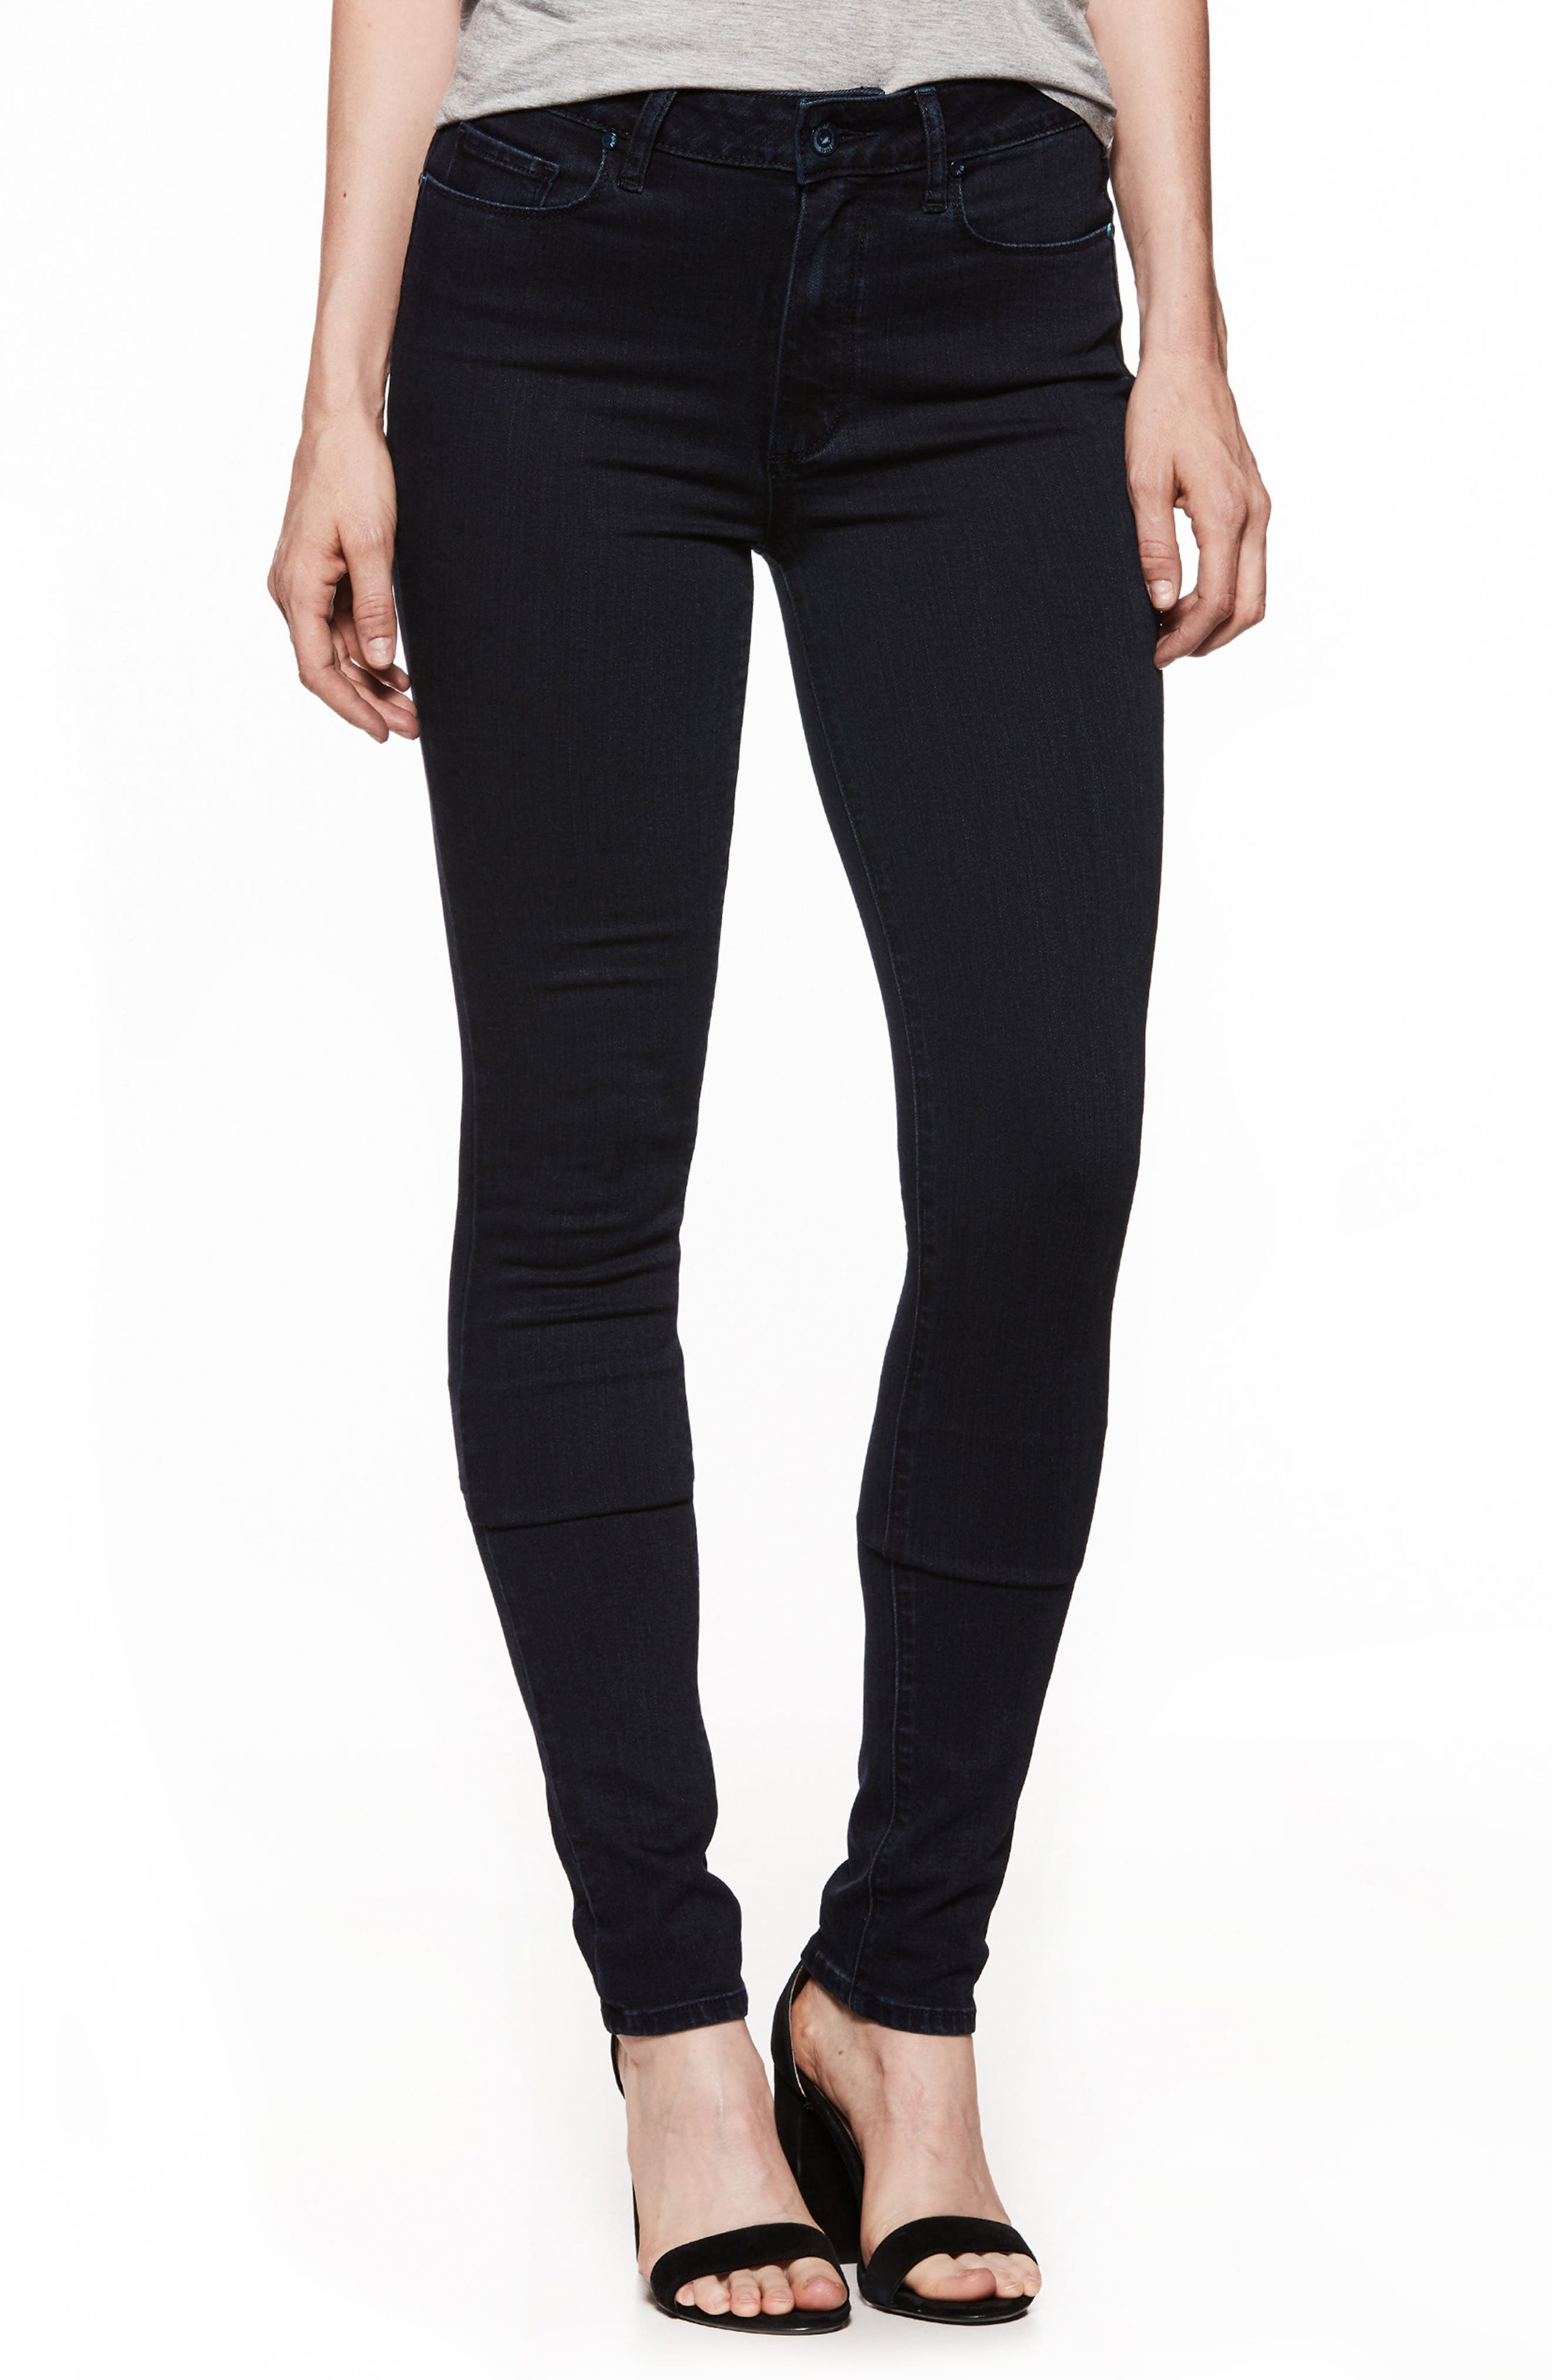 Main Image - PAIGE Transcend - Leggy High Waist Ultra Skinny Jeans (Alley)